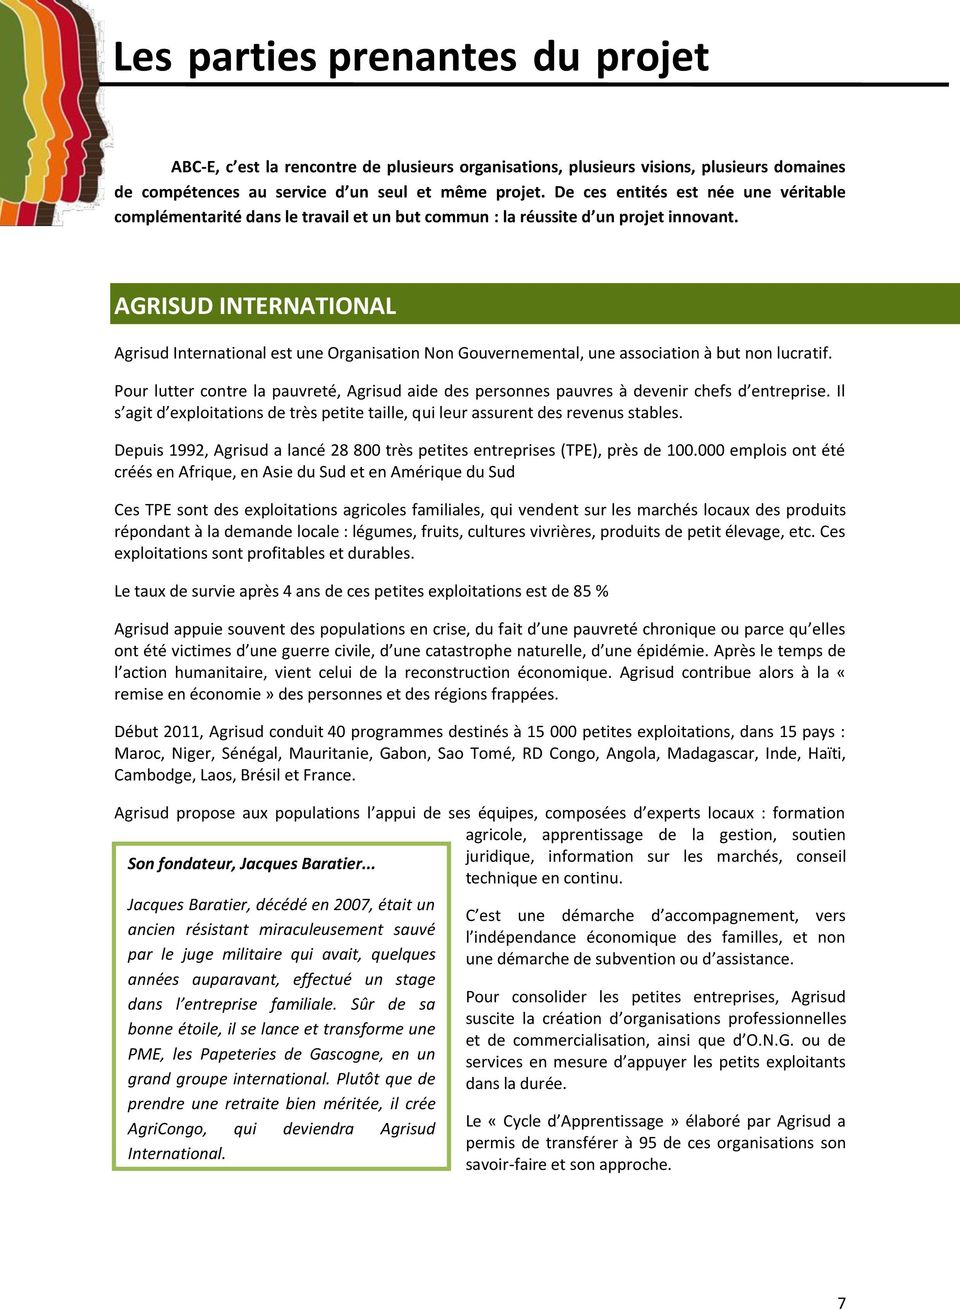 AGRISUD INTERNATIONAL Agrisud International est une Organisation Non Gouvernemental, une association à but non lucratif.